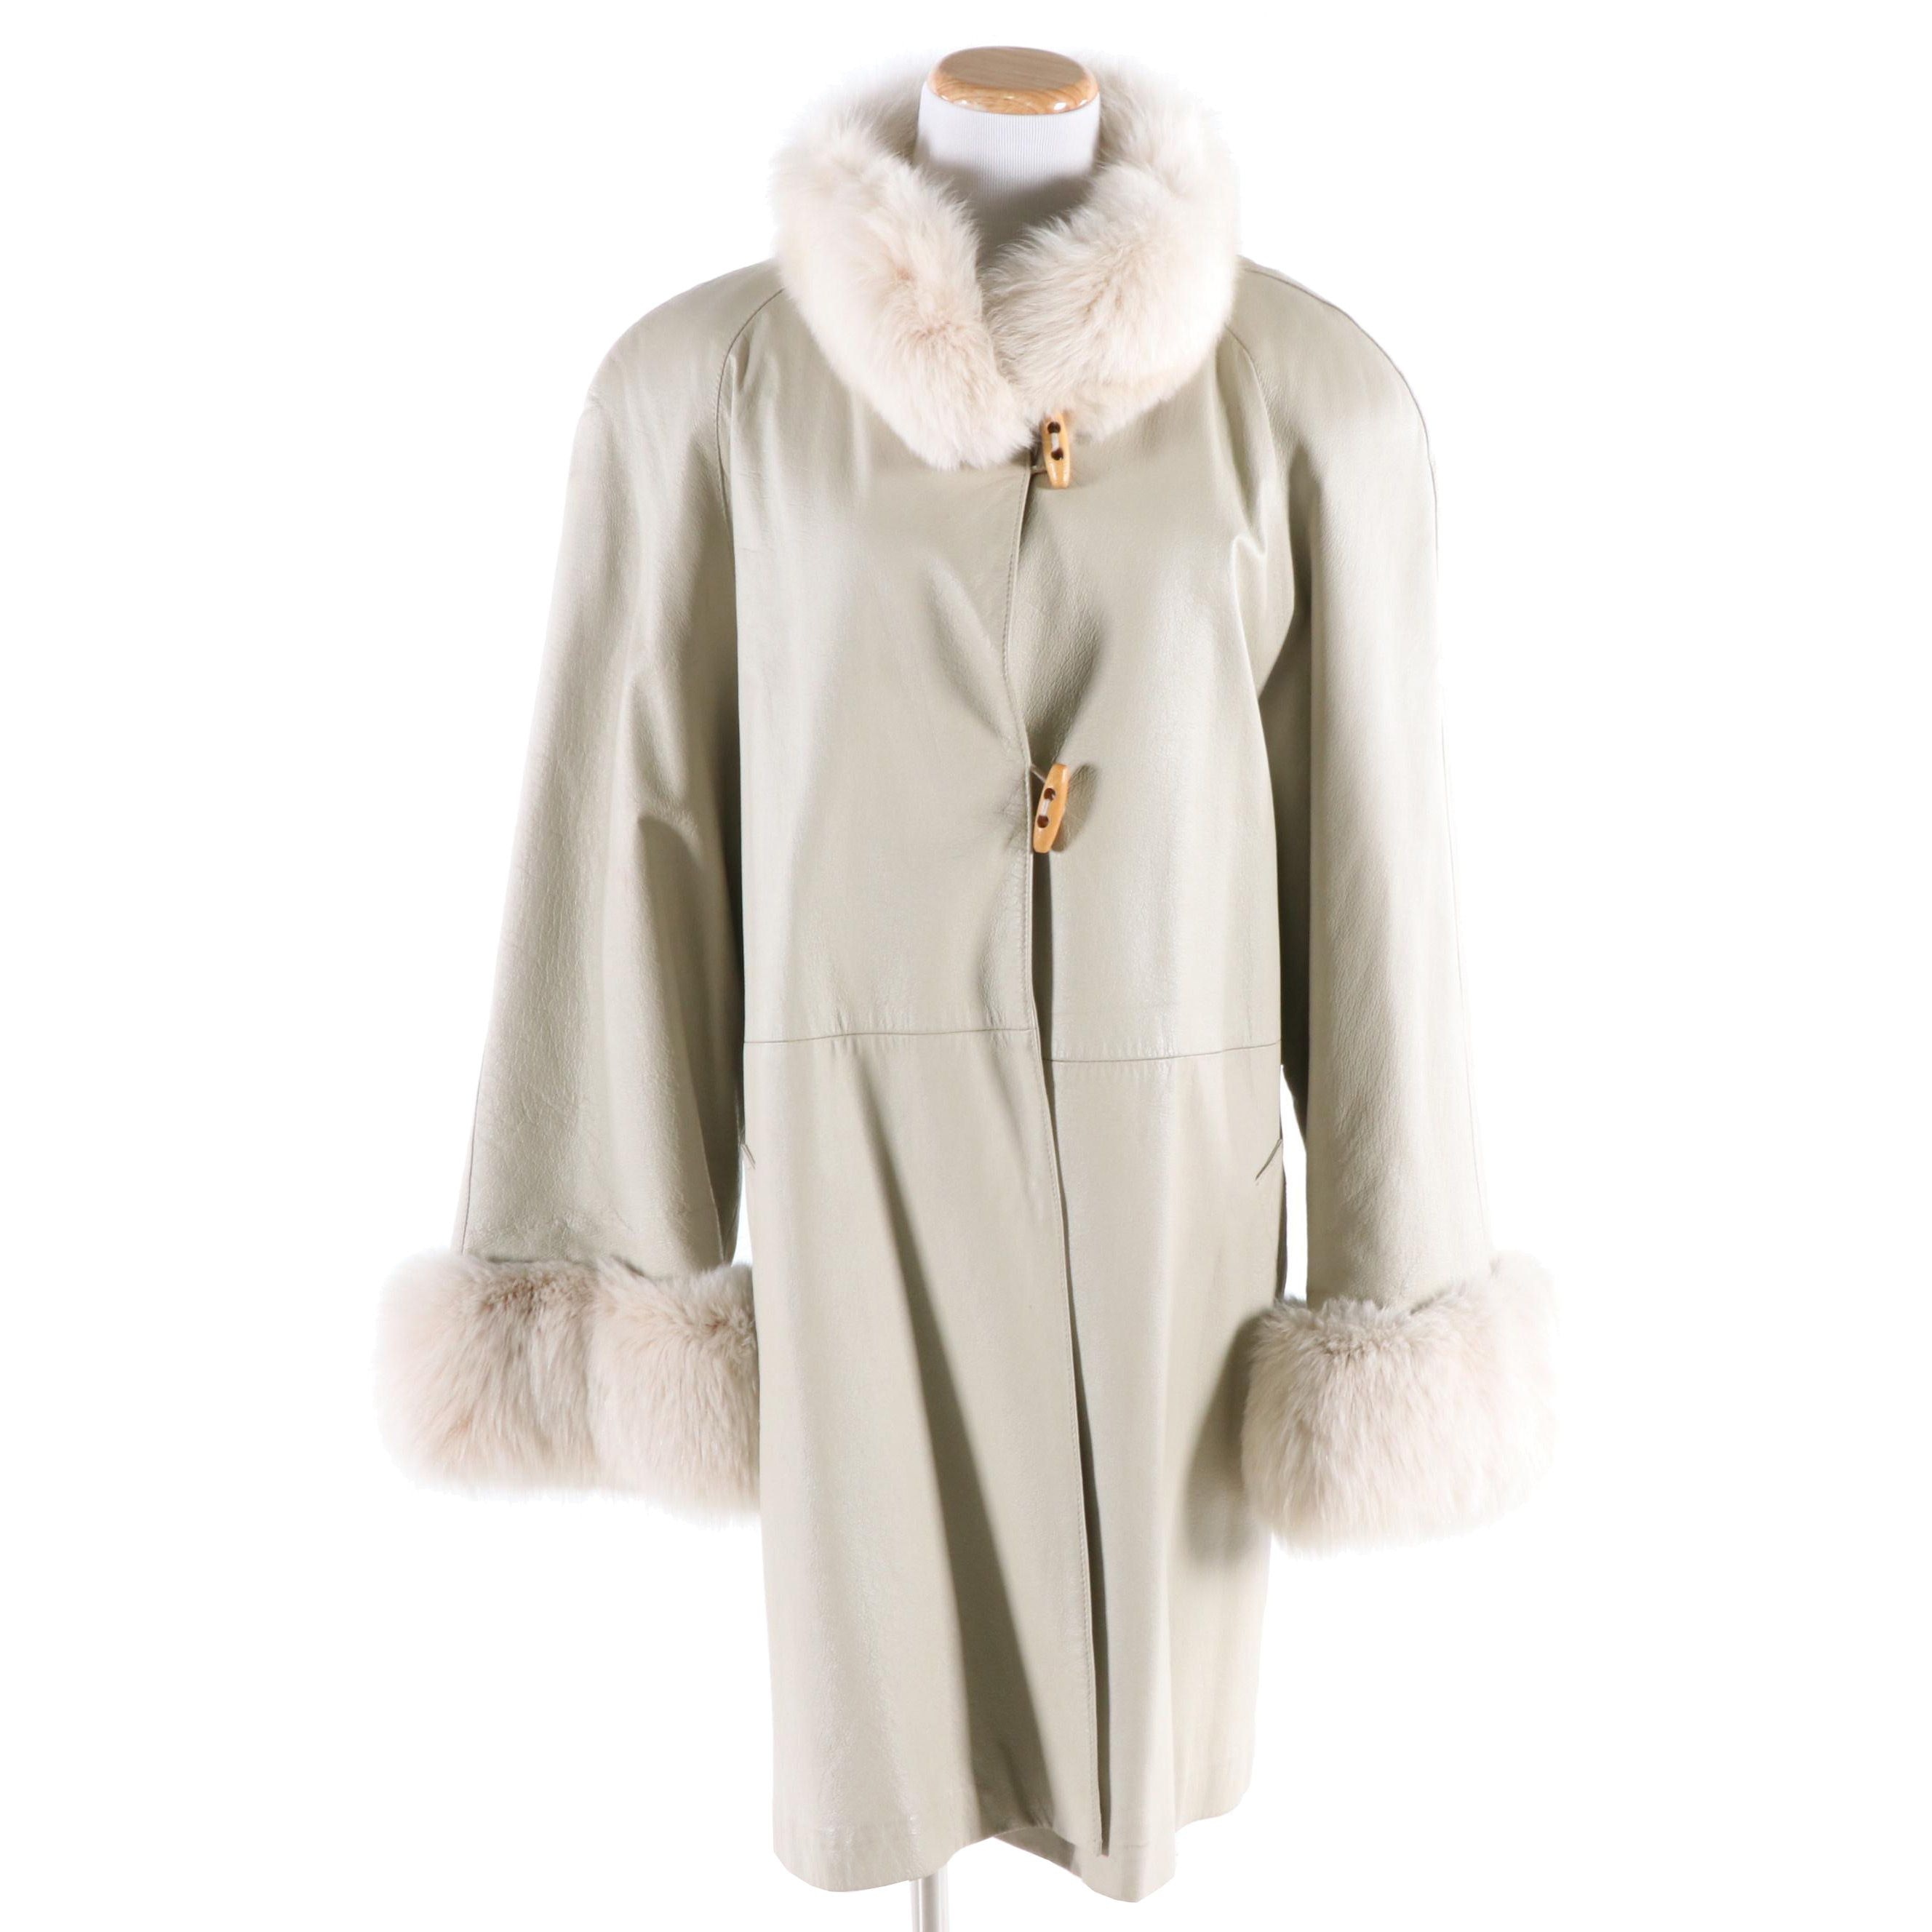 Henig Furs Oyster Leather Swing Coat with Fox Collar and Cuffs